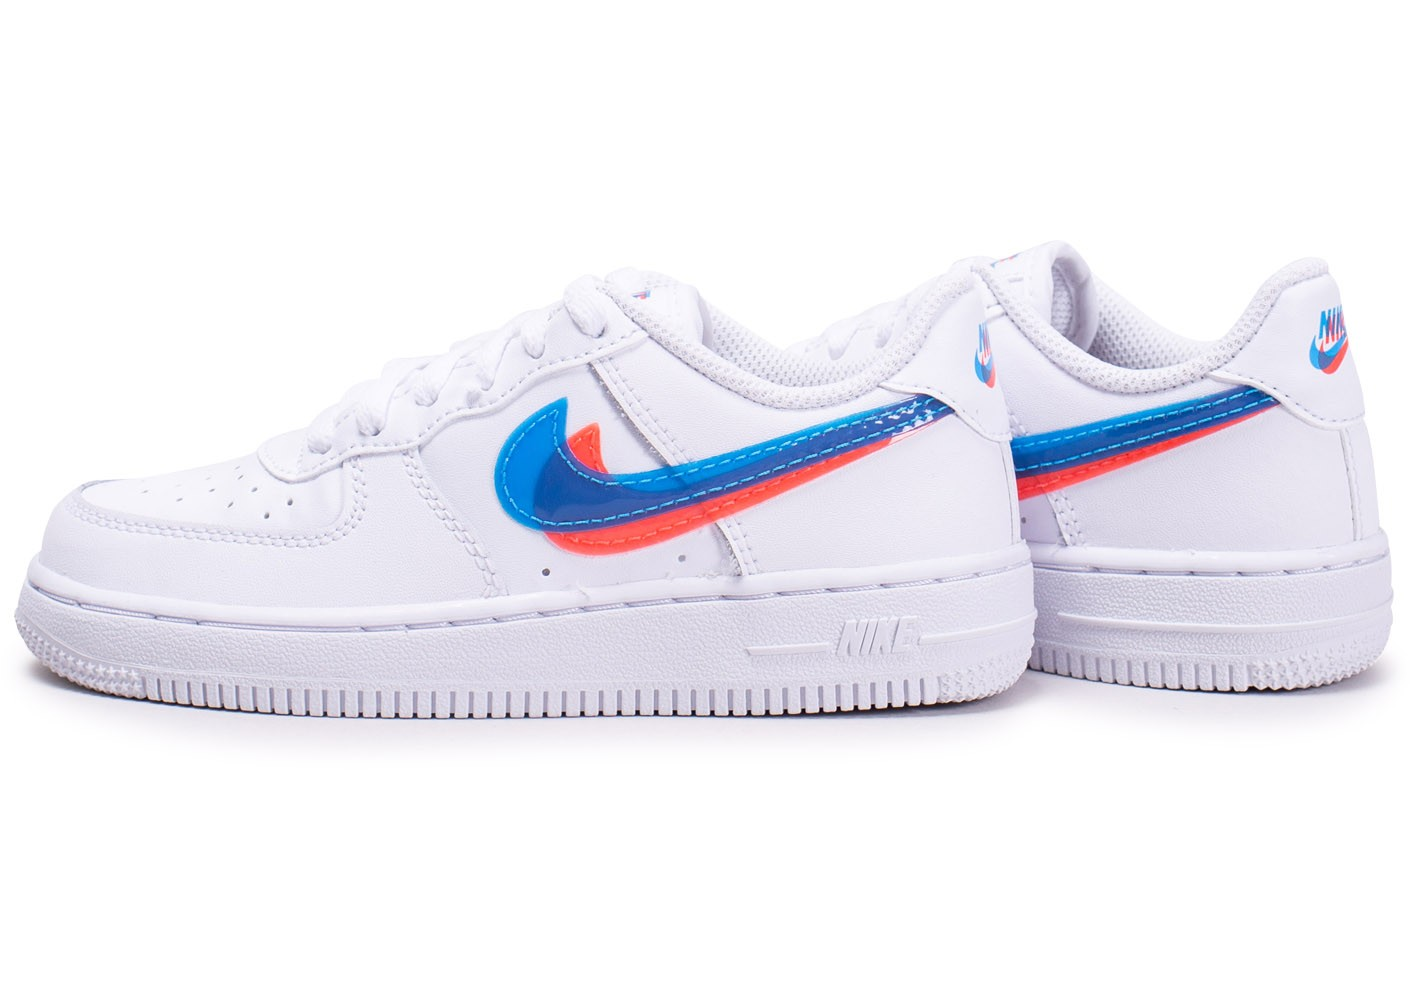 quality products cheap super cute Nike Air Force 1 3D Blanche, rouge et bleu - Chaussures Enfant ...